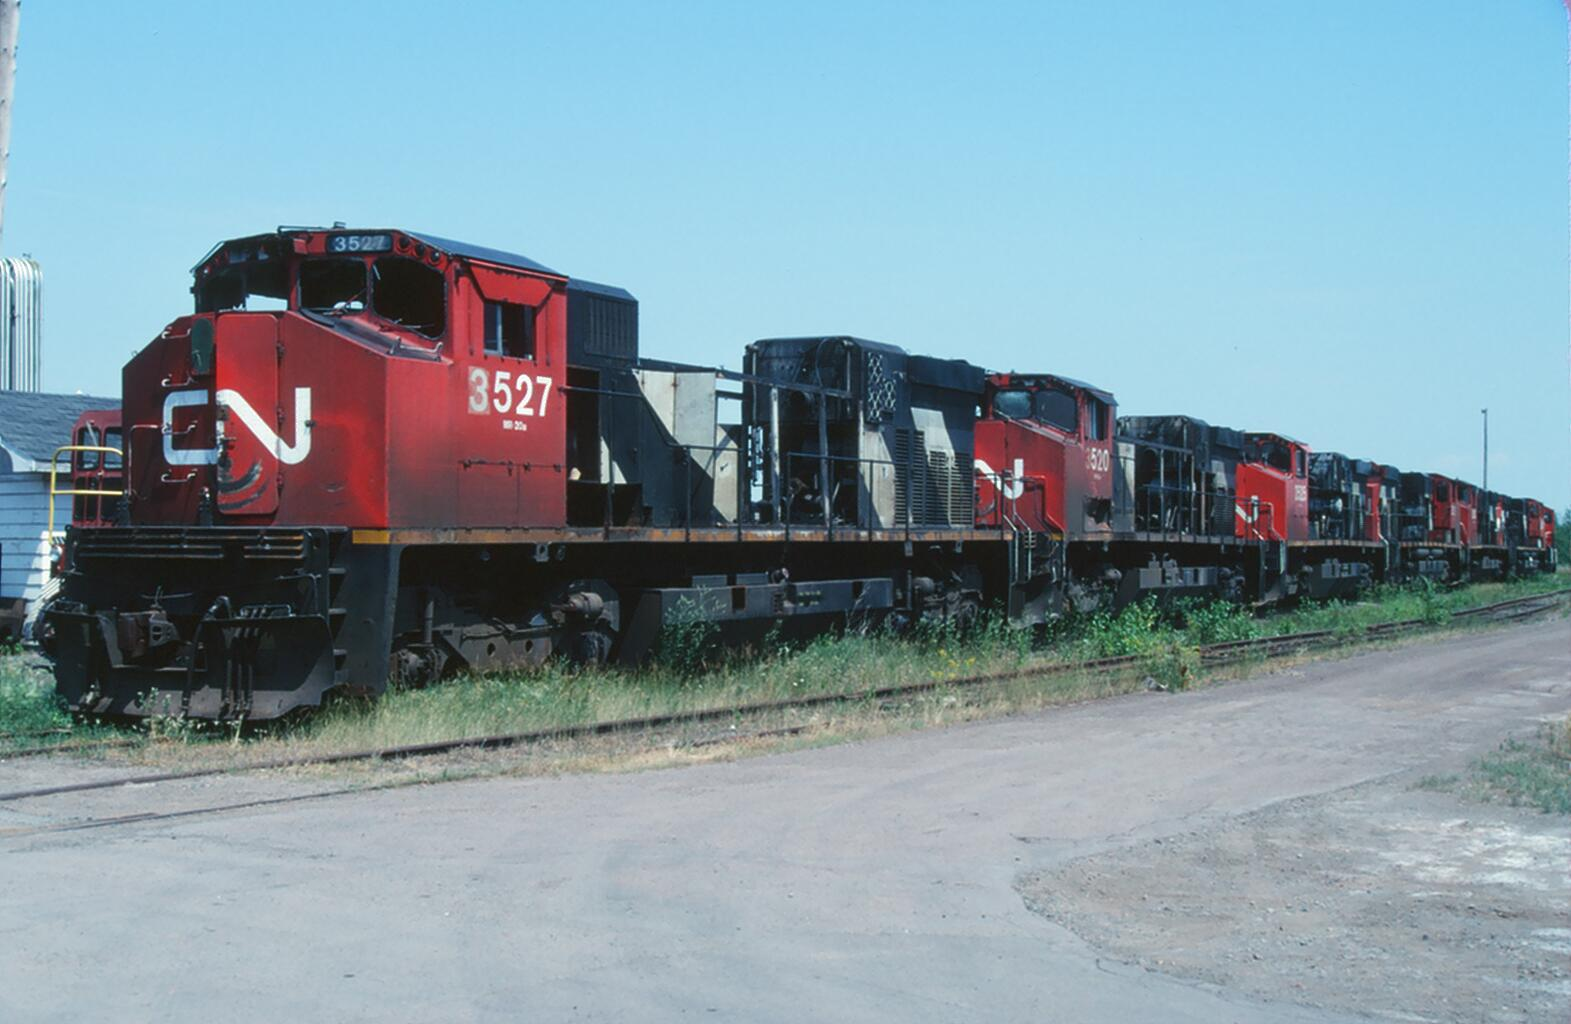 CN 3527, 3520, and 3525 in Moncton, NB 1997/08/12. Slide by WA Gleason.